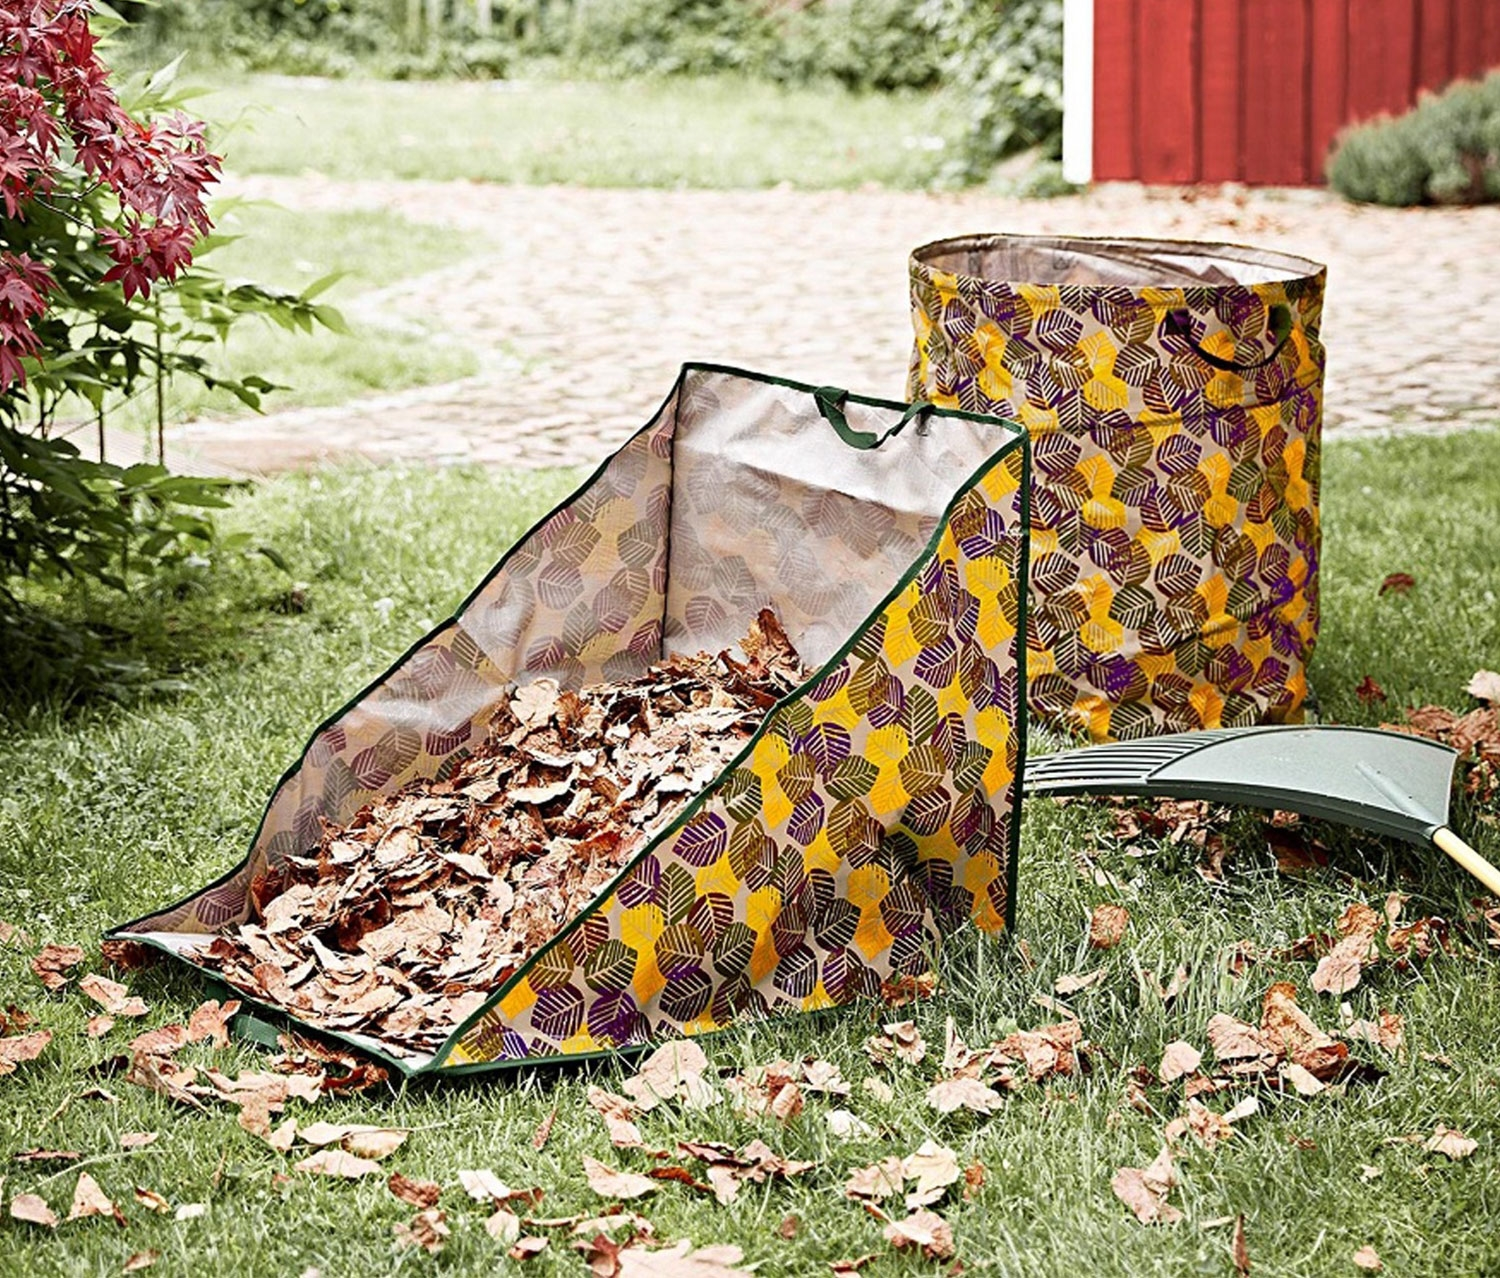 Leaf collecting bag, Gray with colorful leafs